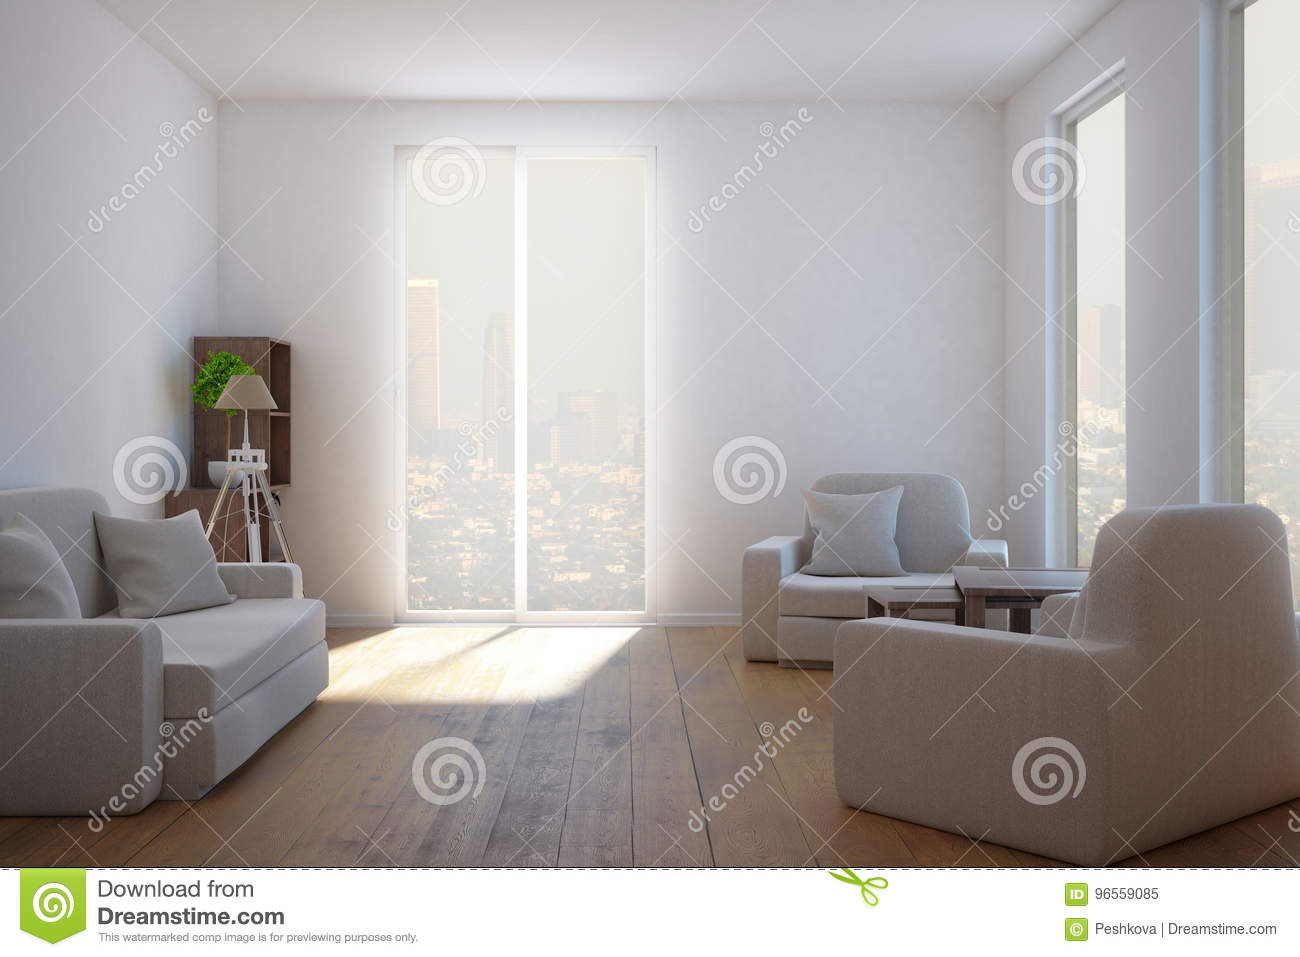 Clean living room stock illustration. Illustration of comfortable ...